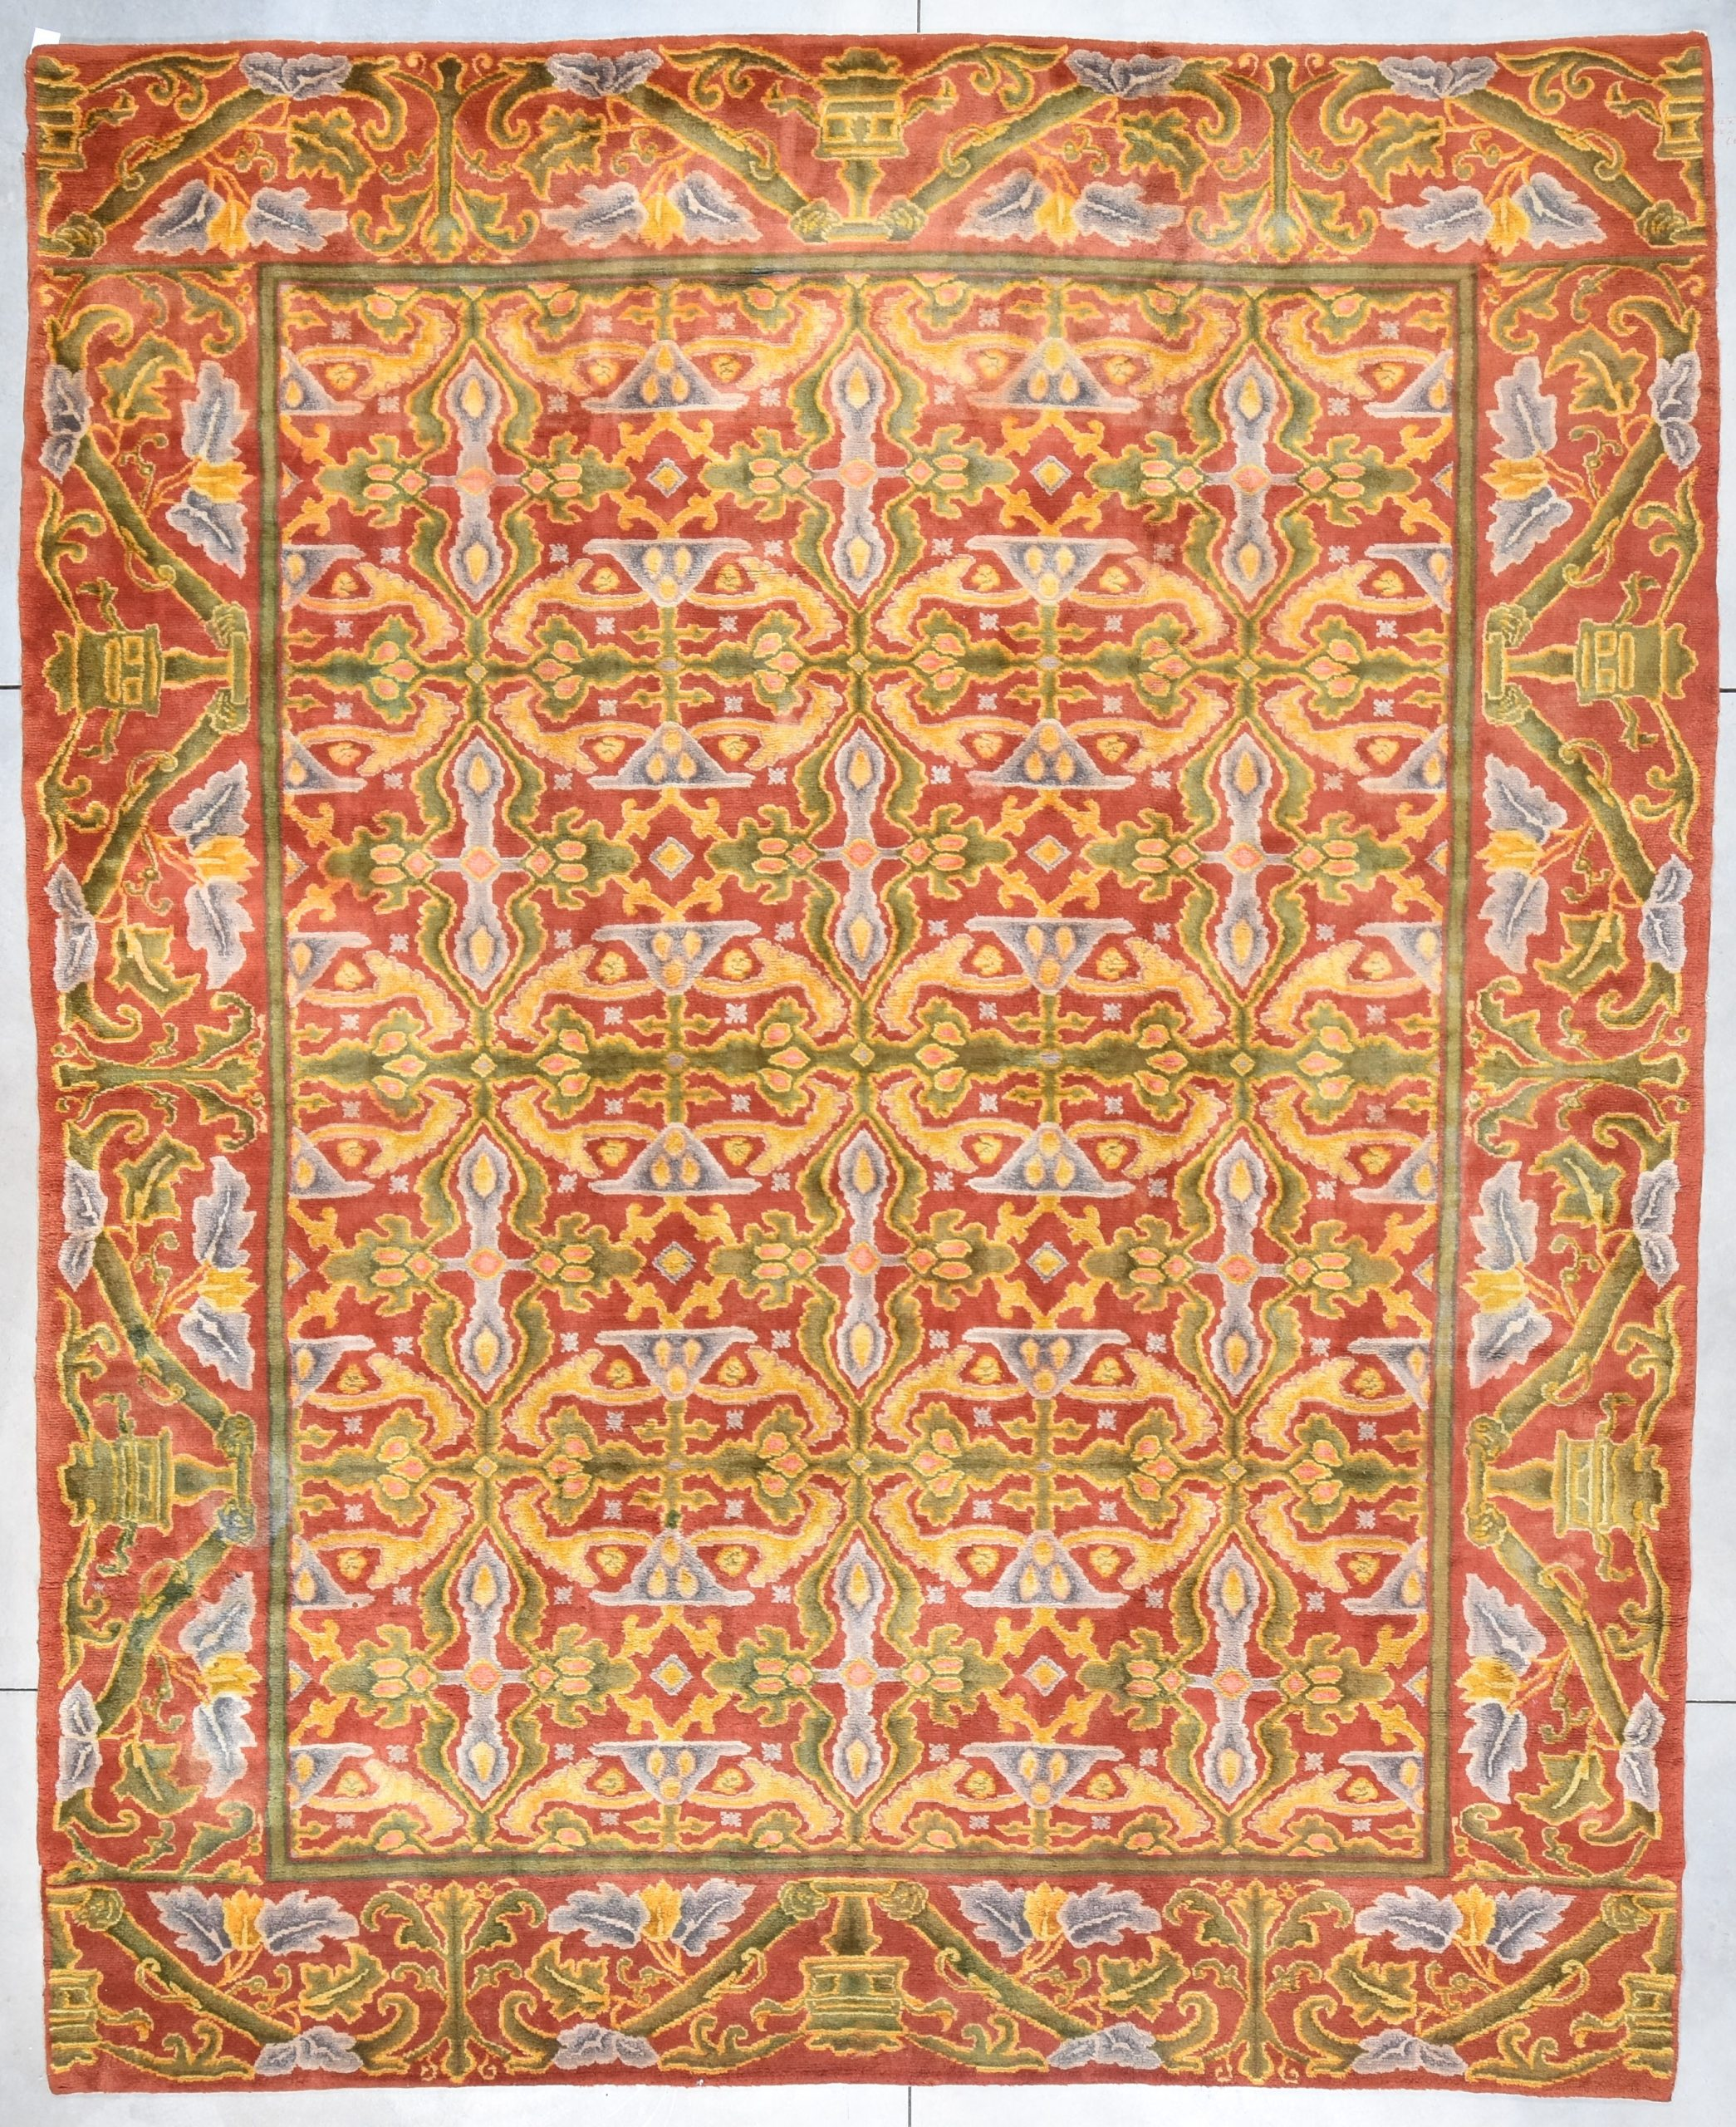 7942 Donegal Rug at Mosby Antique rugs